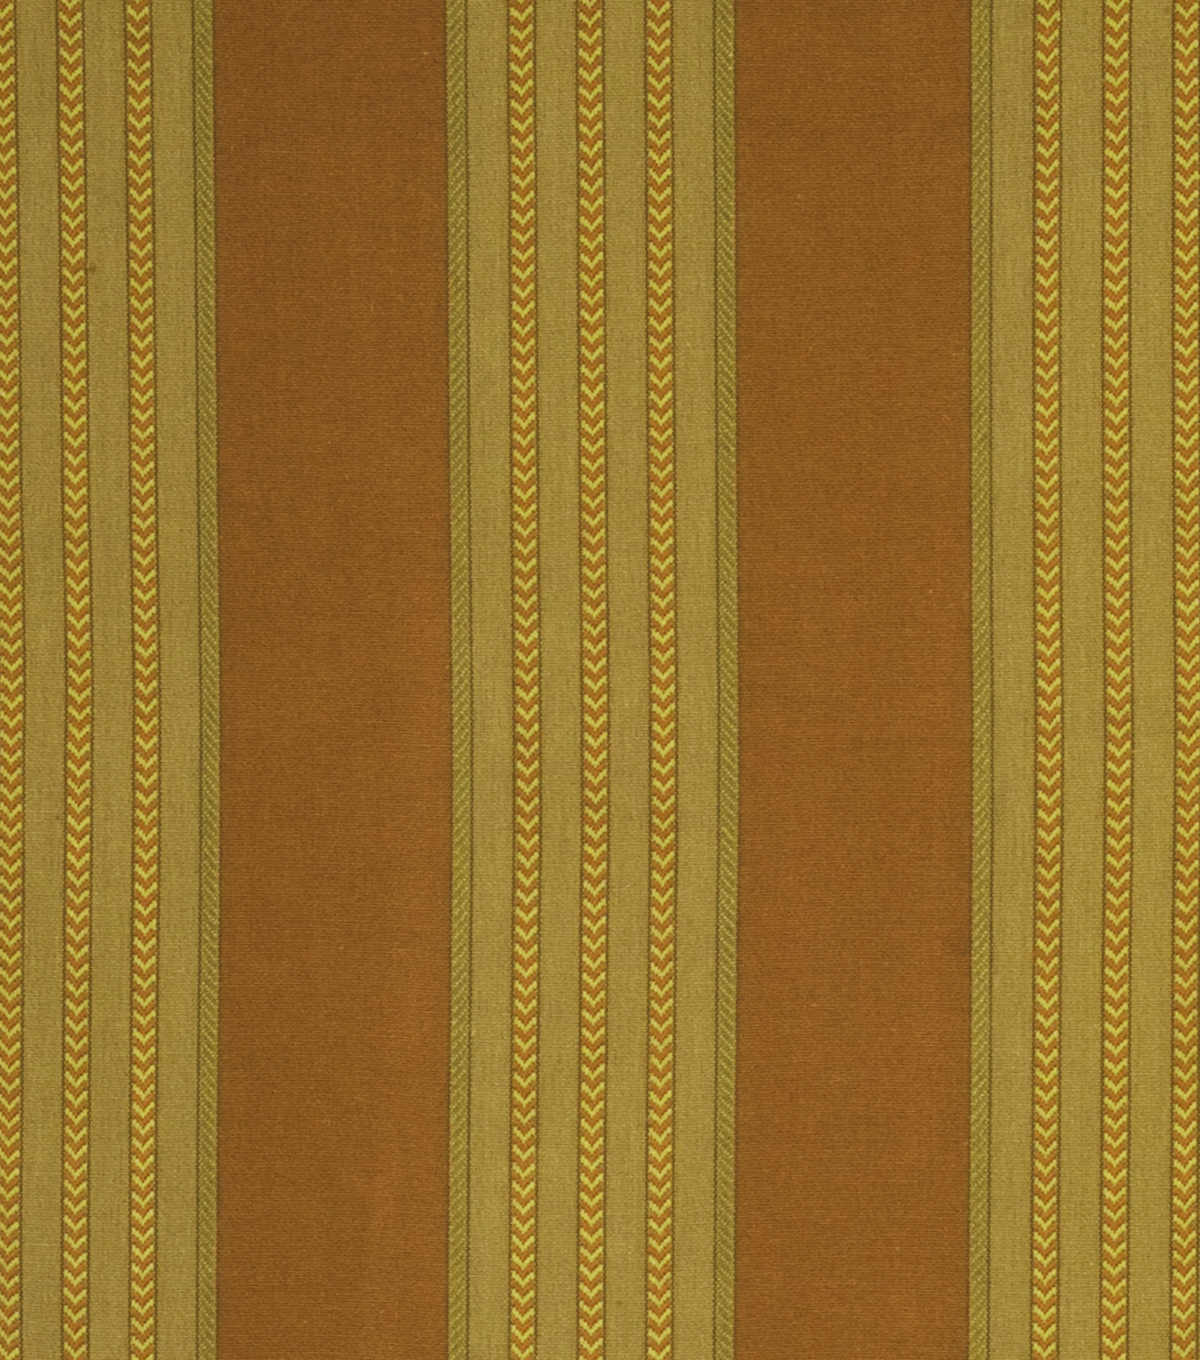 Home Decor 8\u0022x8\u0022 Fabric Swatch-Jaclyn Smith Odessa-Pottery